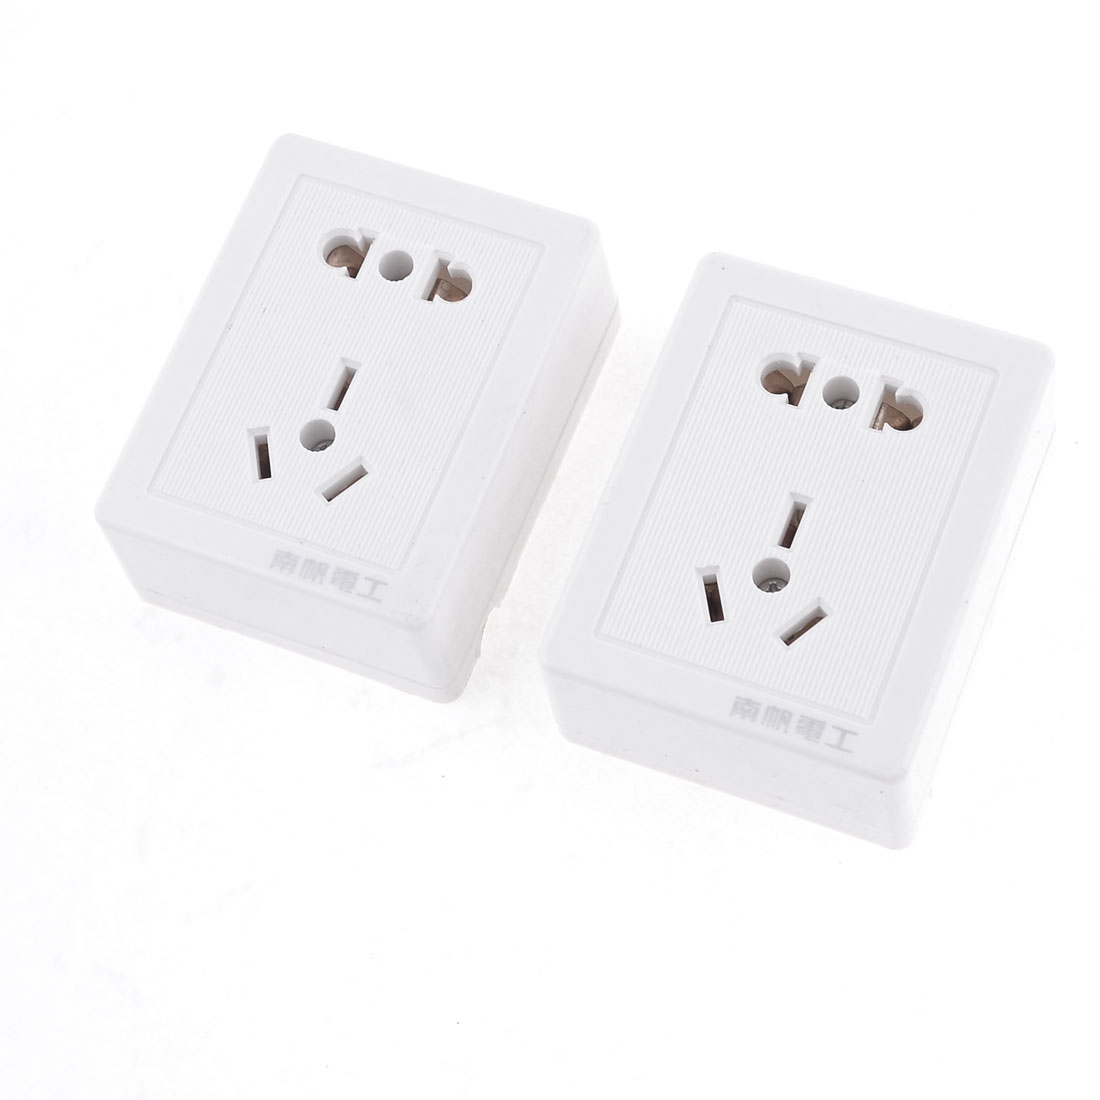 US EU AU Plug Socket Wall Plate Power Connector AC 250V 10A 2Pcs